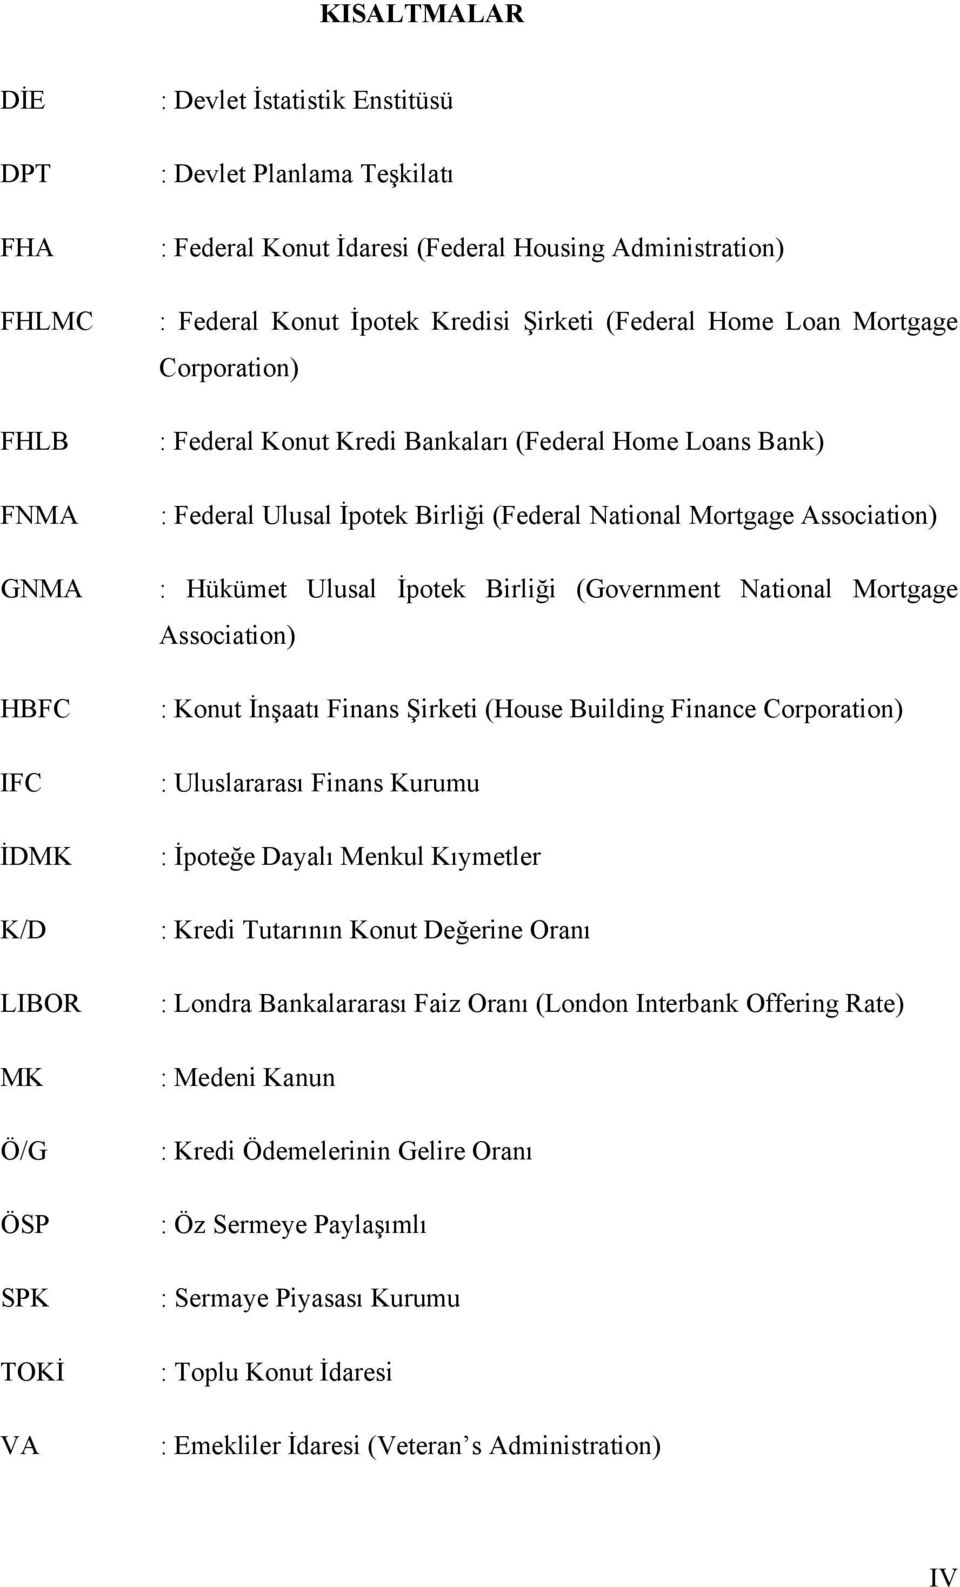 National Mortgage Association) : Hükümet Ulusal İpotek Birliği (Government National Mortgage Association) : Konut İnşaatı Finans Şirketi (House Building Finance Corporation) : Uluslararası Finans